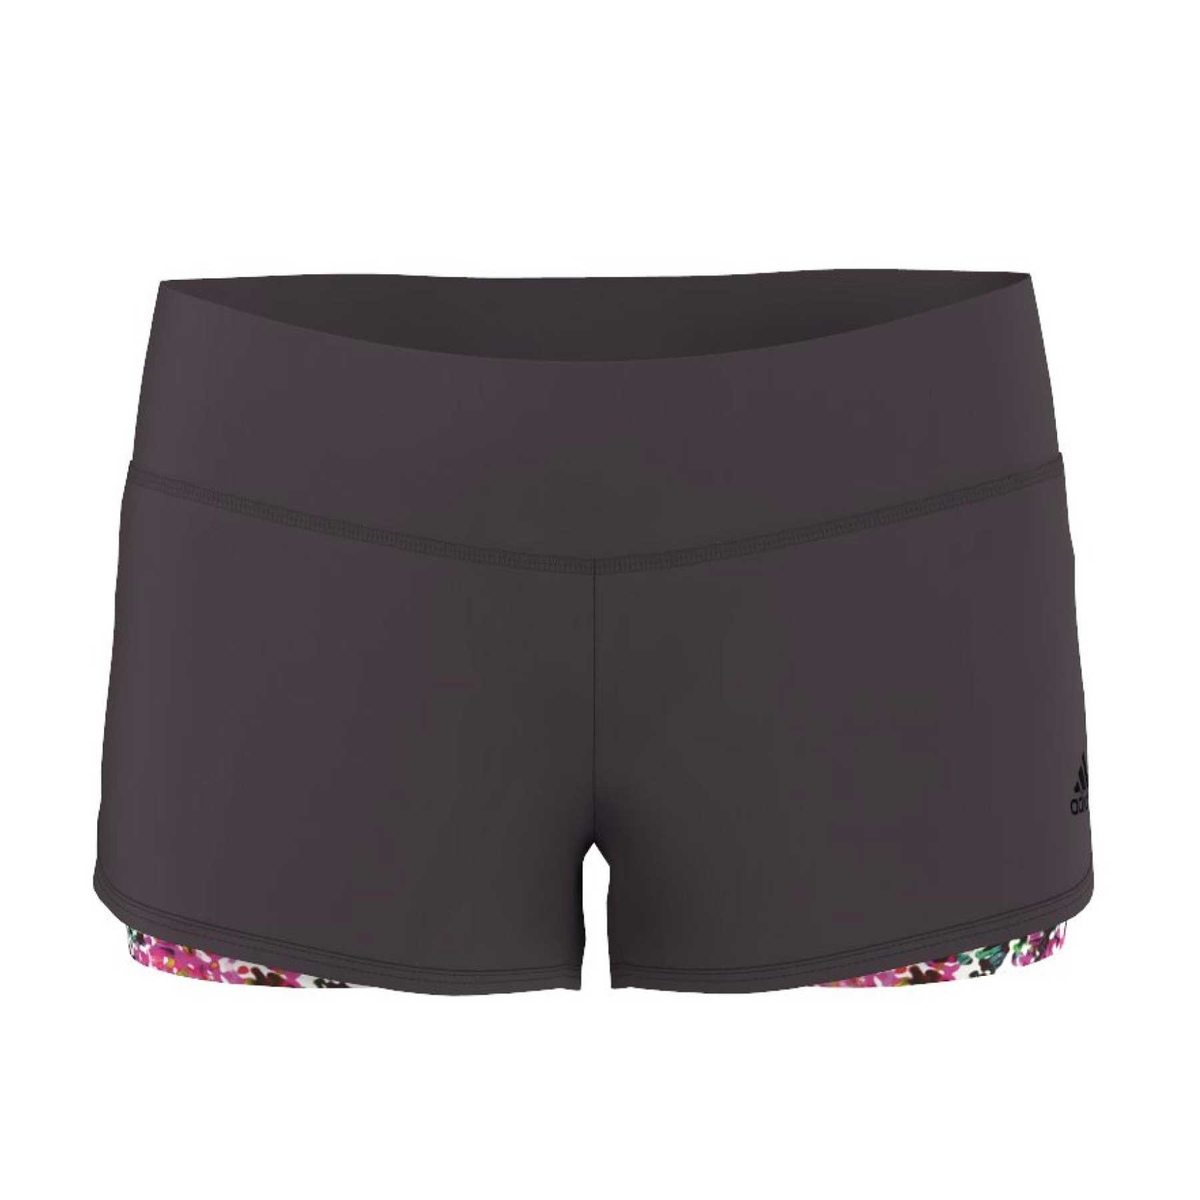 Pantaloncino gym 2 in 1 donna